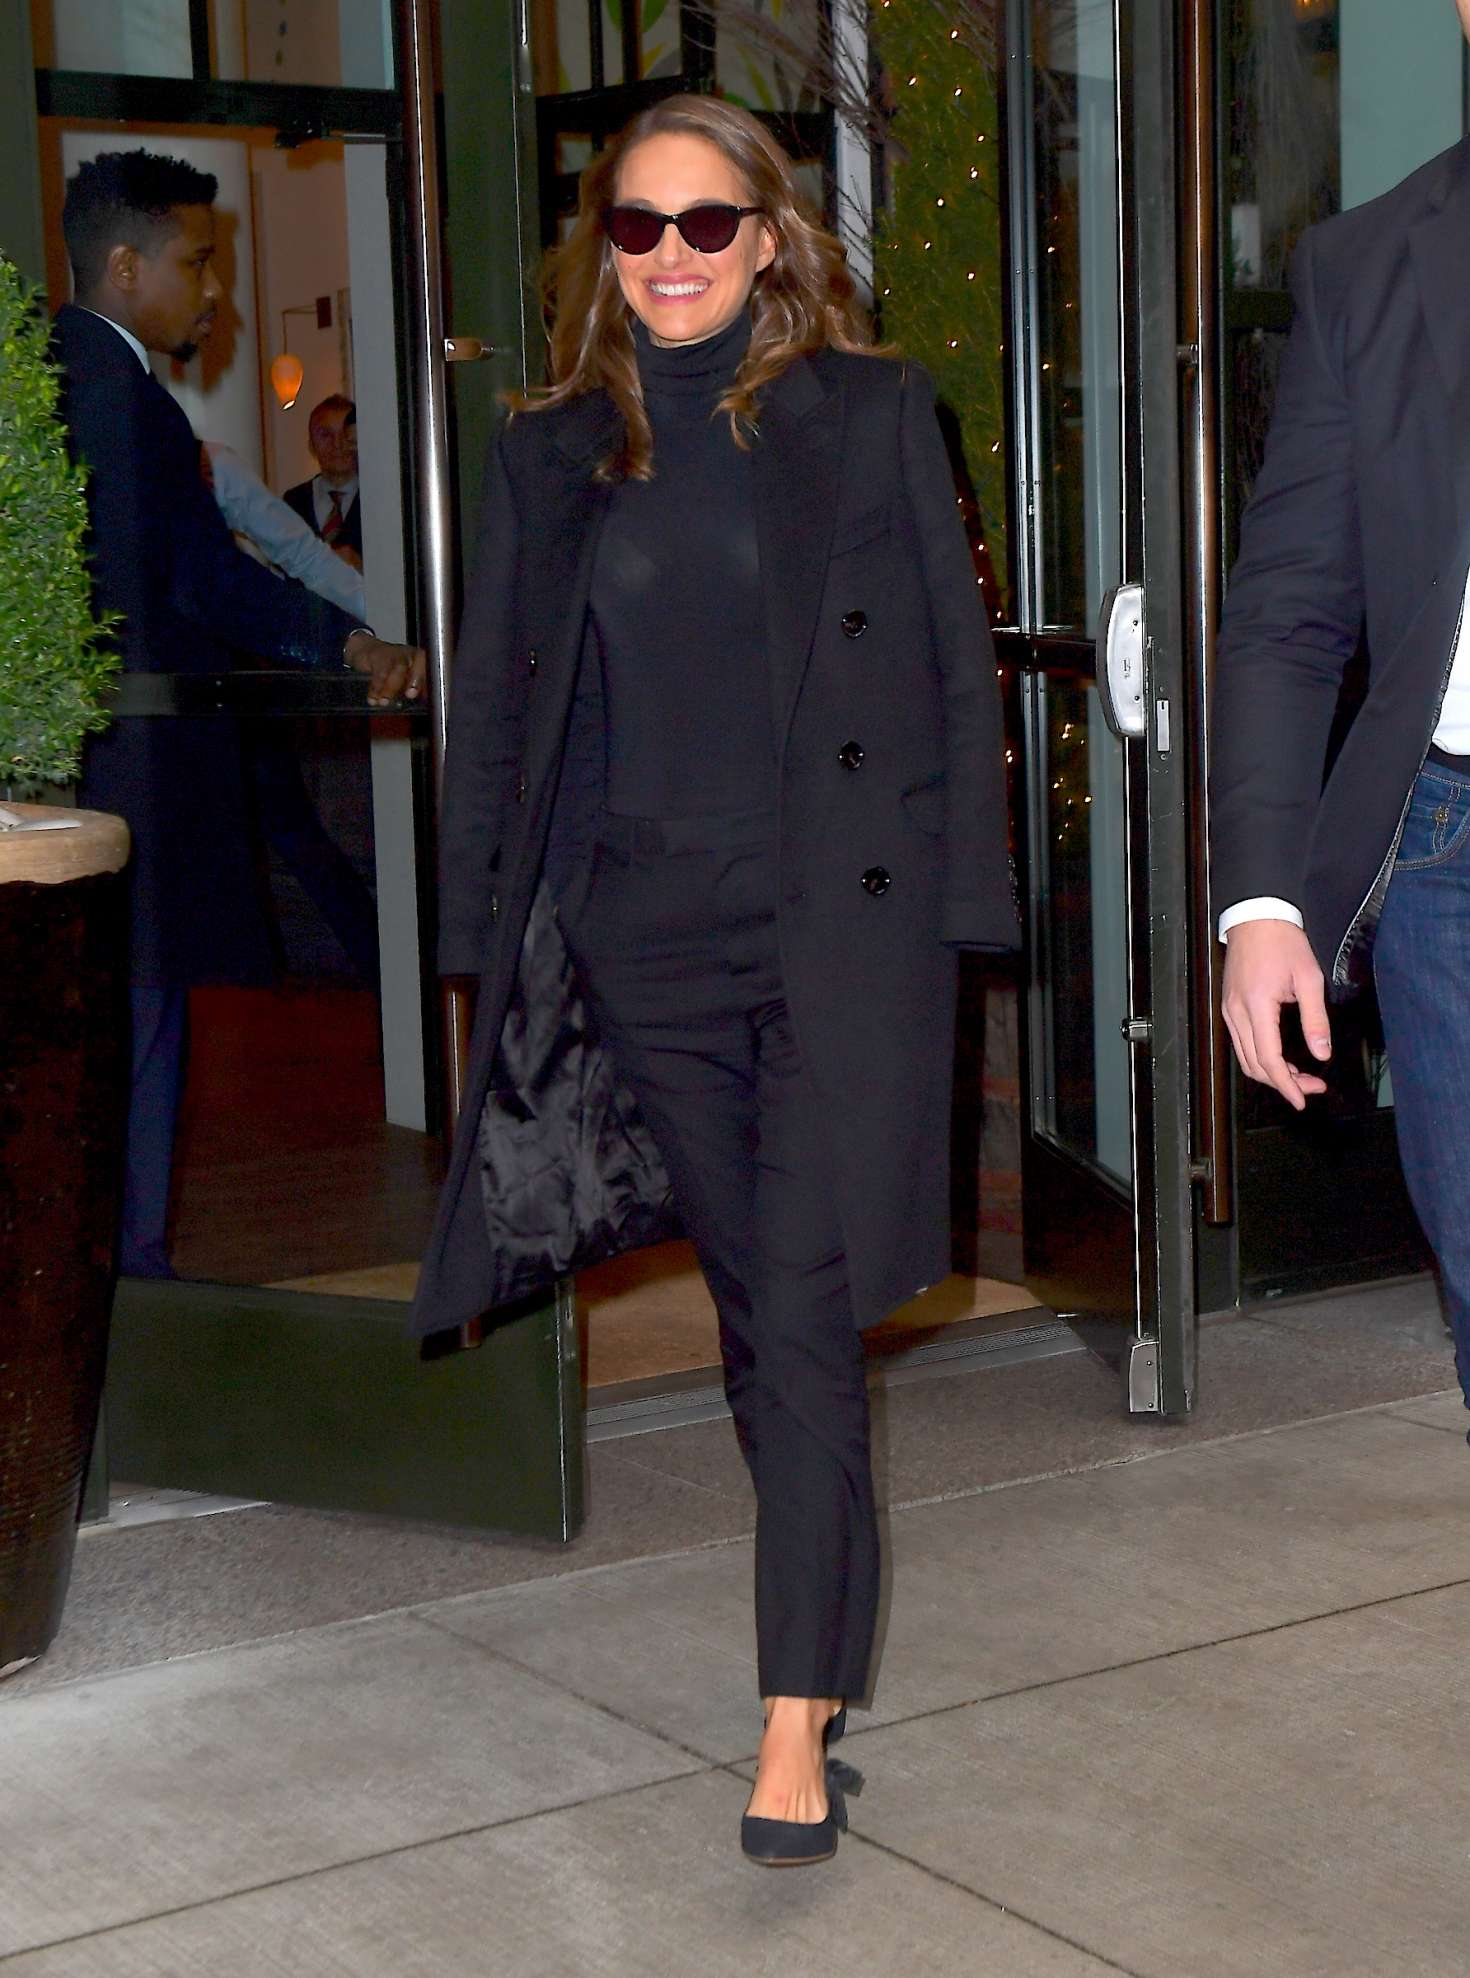 Natalie Portman - Arrives at The Tonight Show in New York